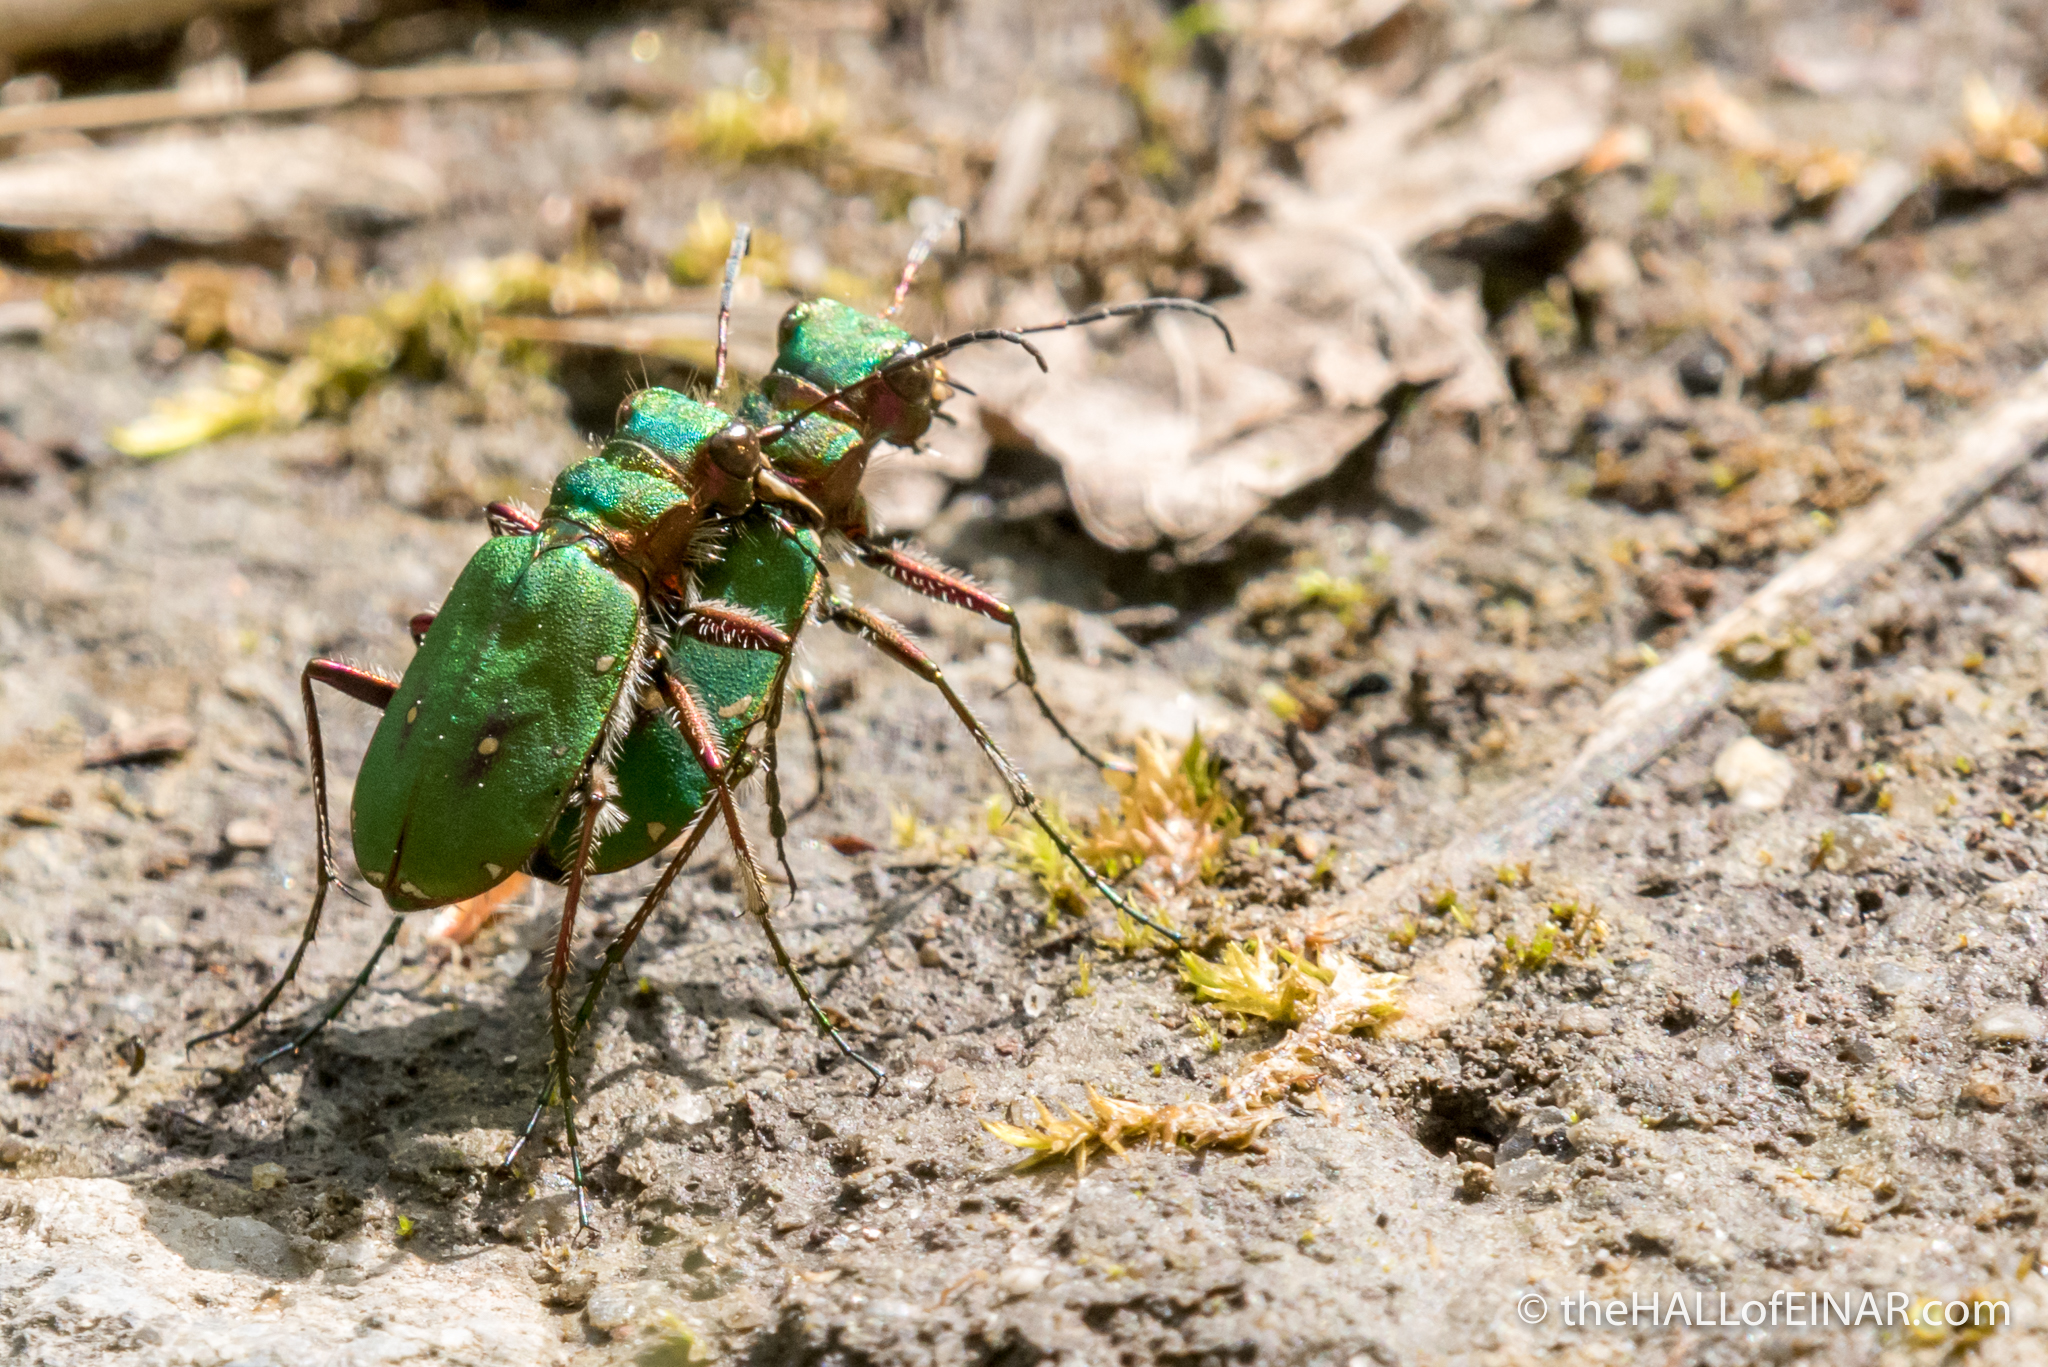 Tiger Beetles - The Hall fo Einar - photograph (c) David Bailey (not the)